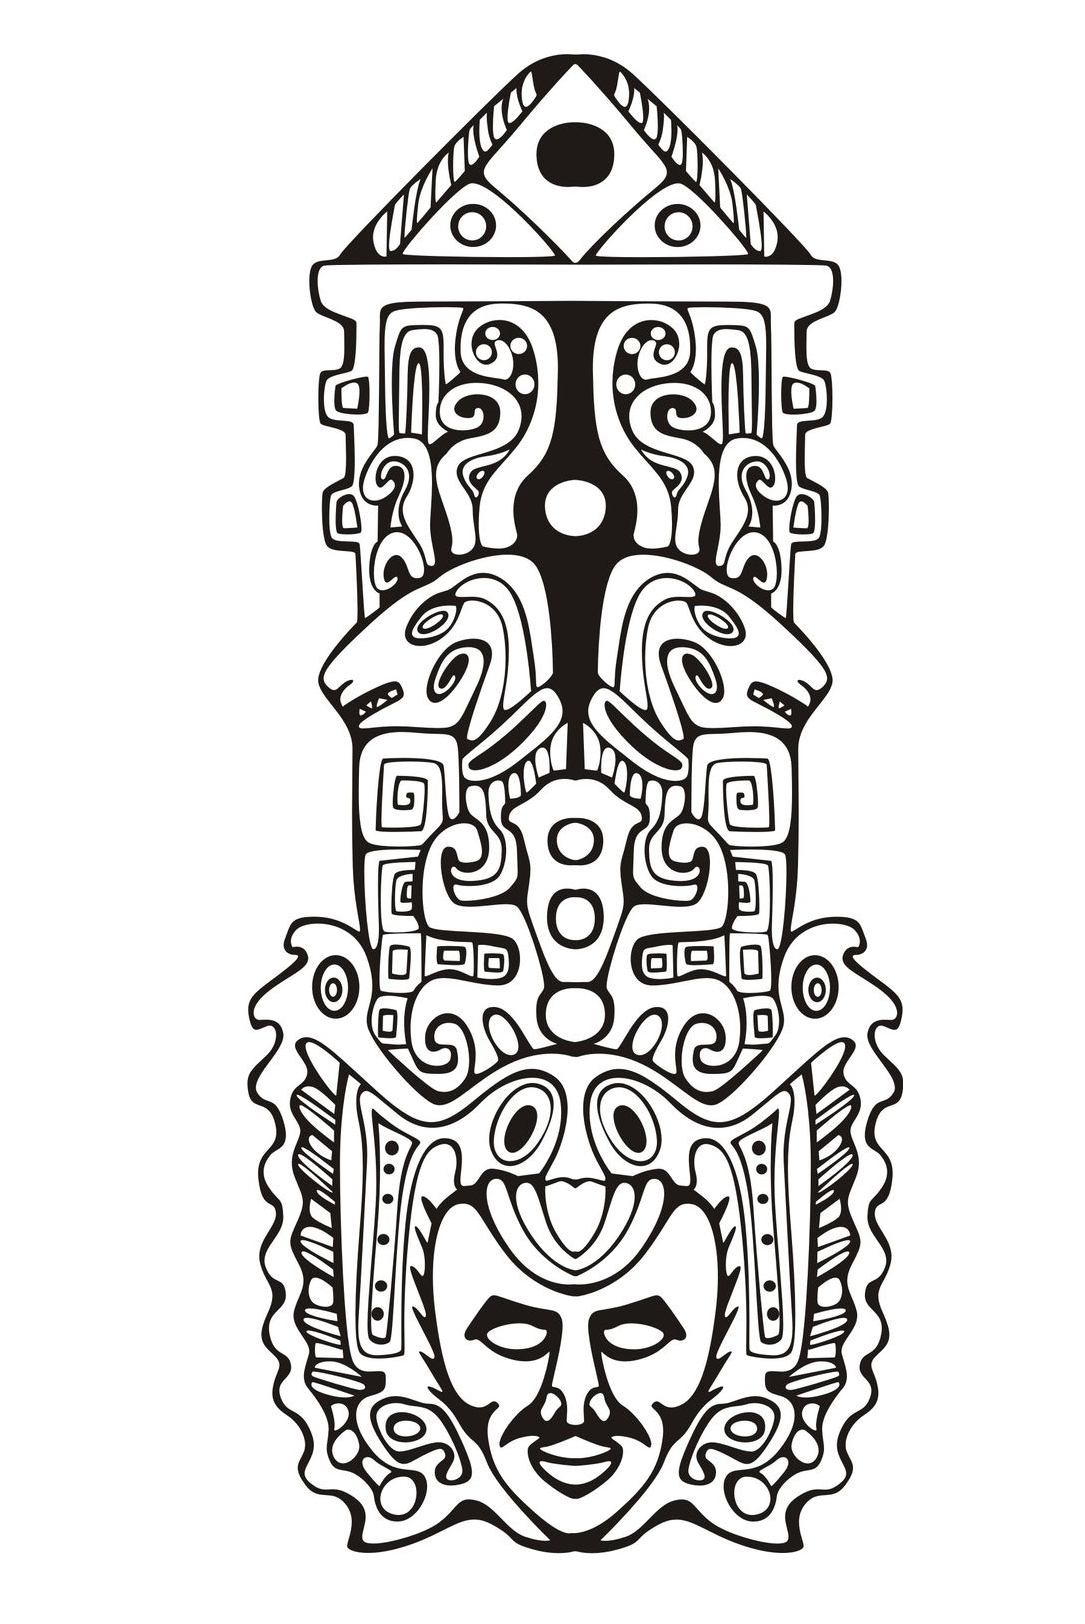 Masks coloring page to print and color